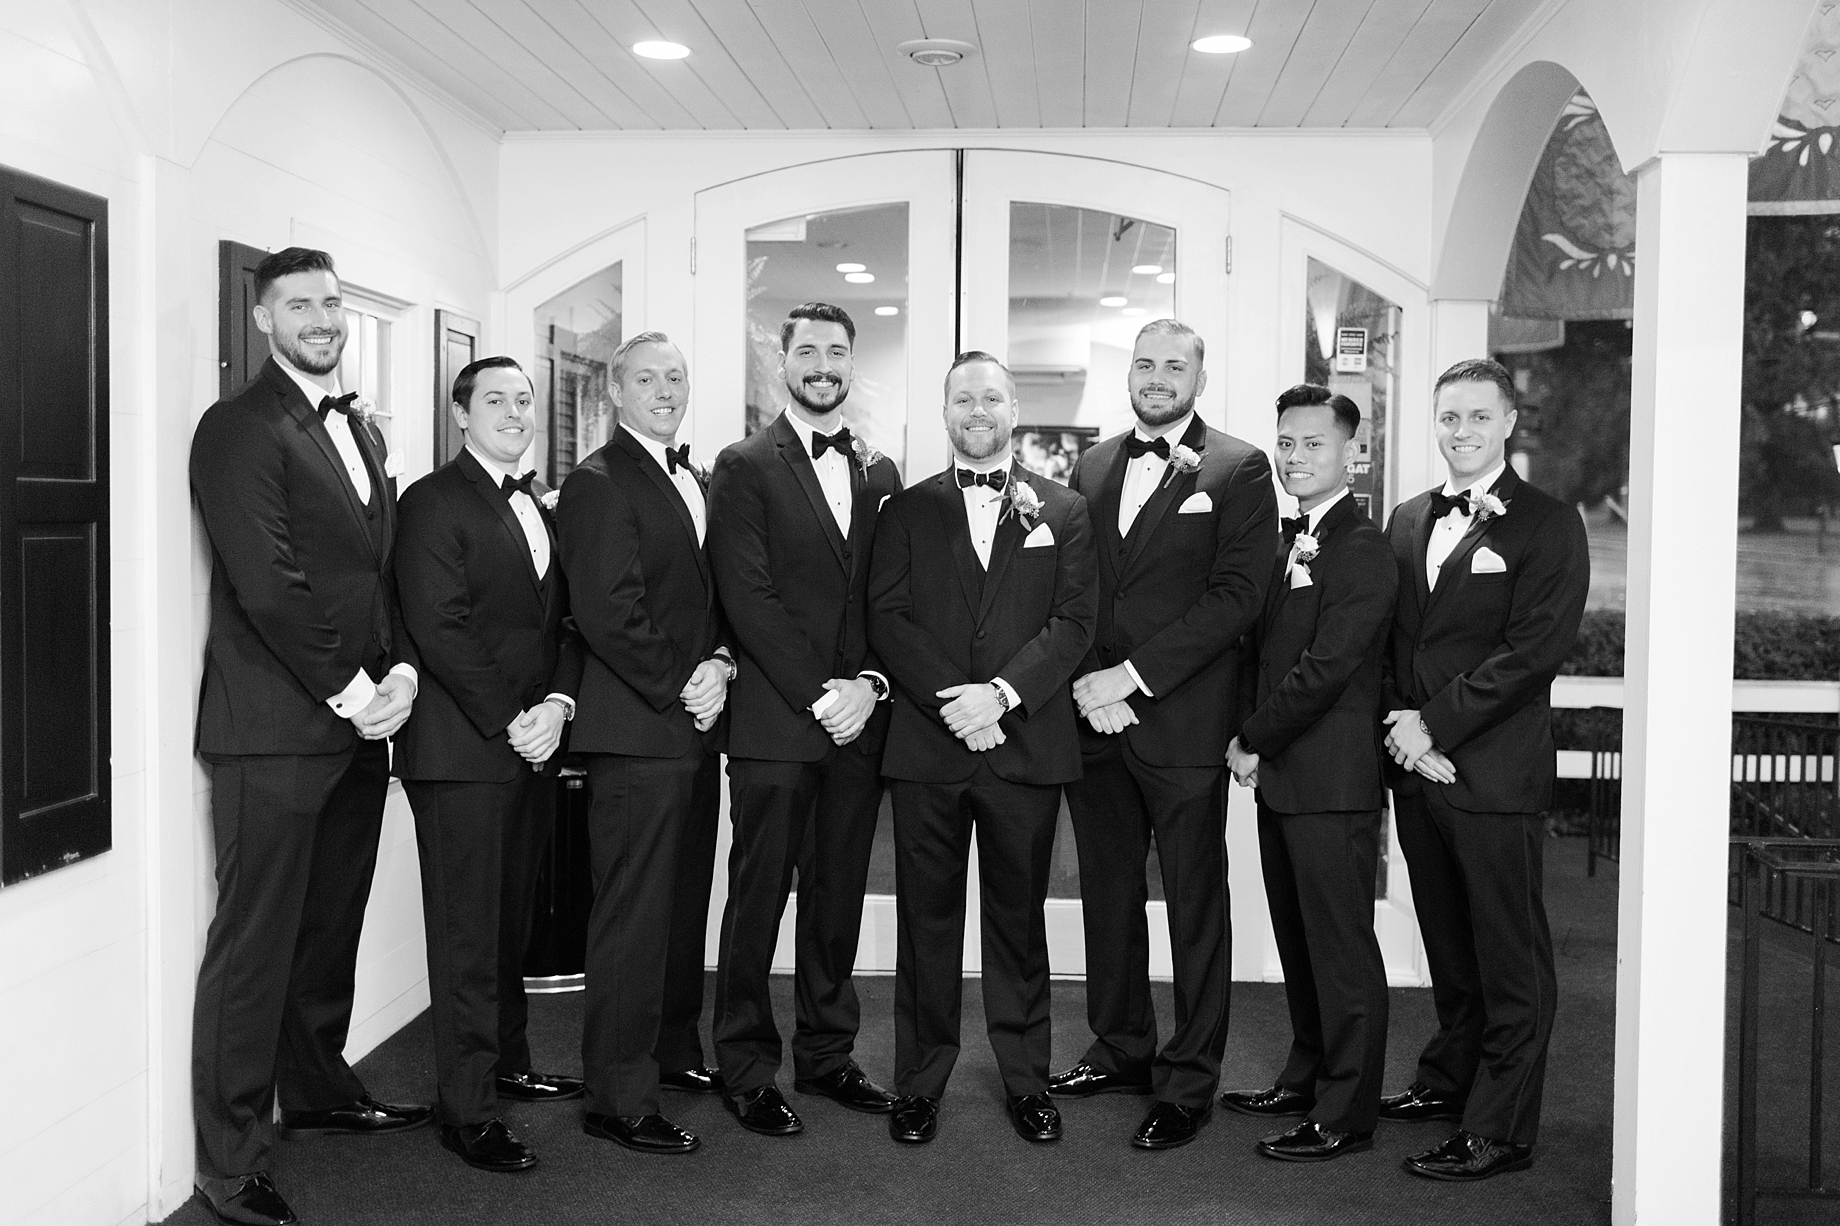 groomsmen in all black tuxes with bowties | William Penn Inn Wedding